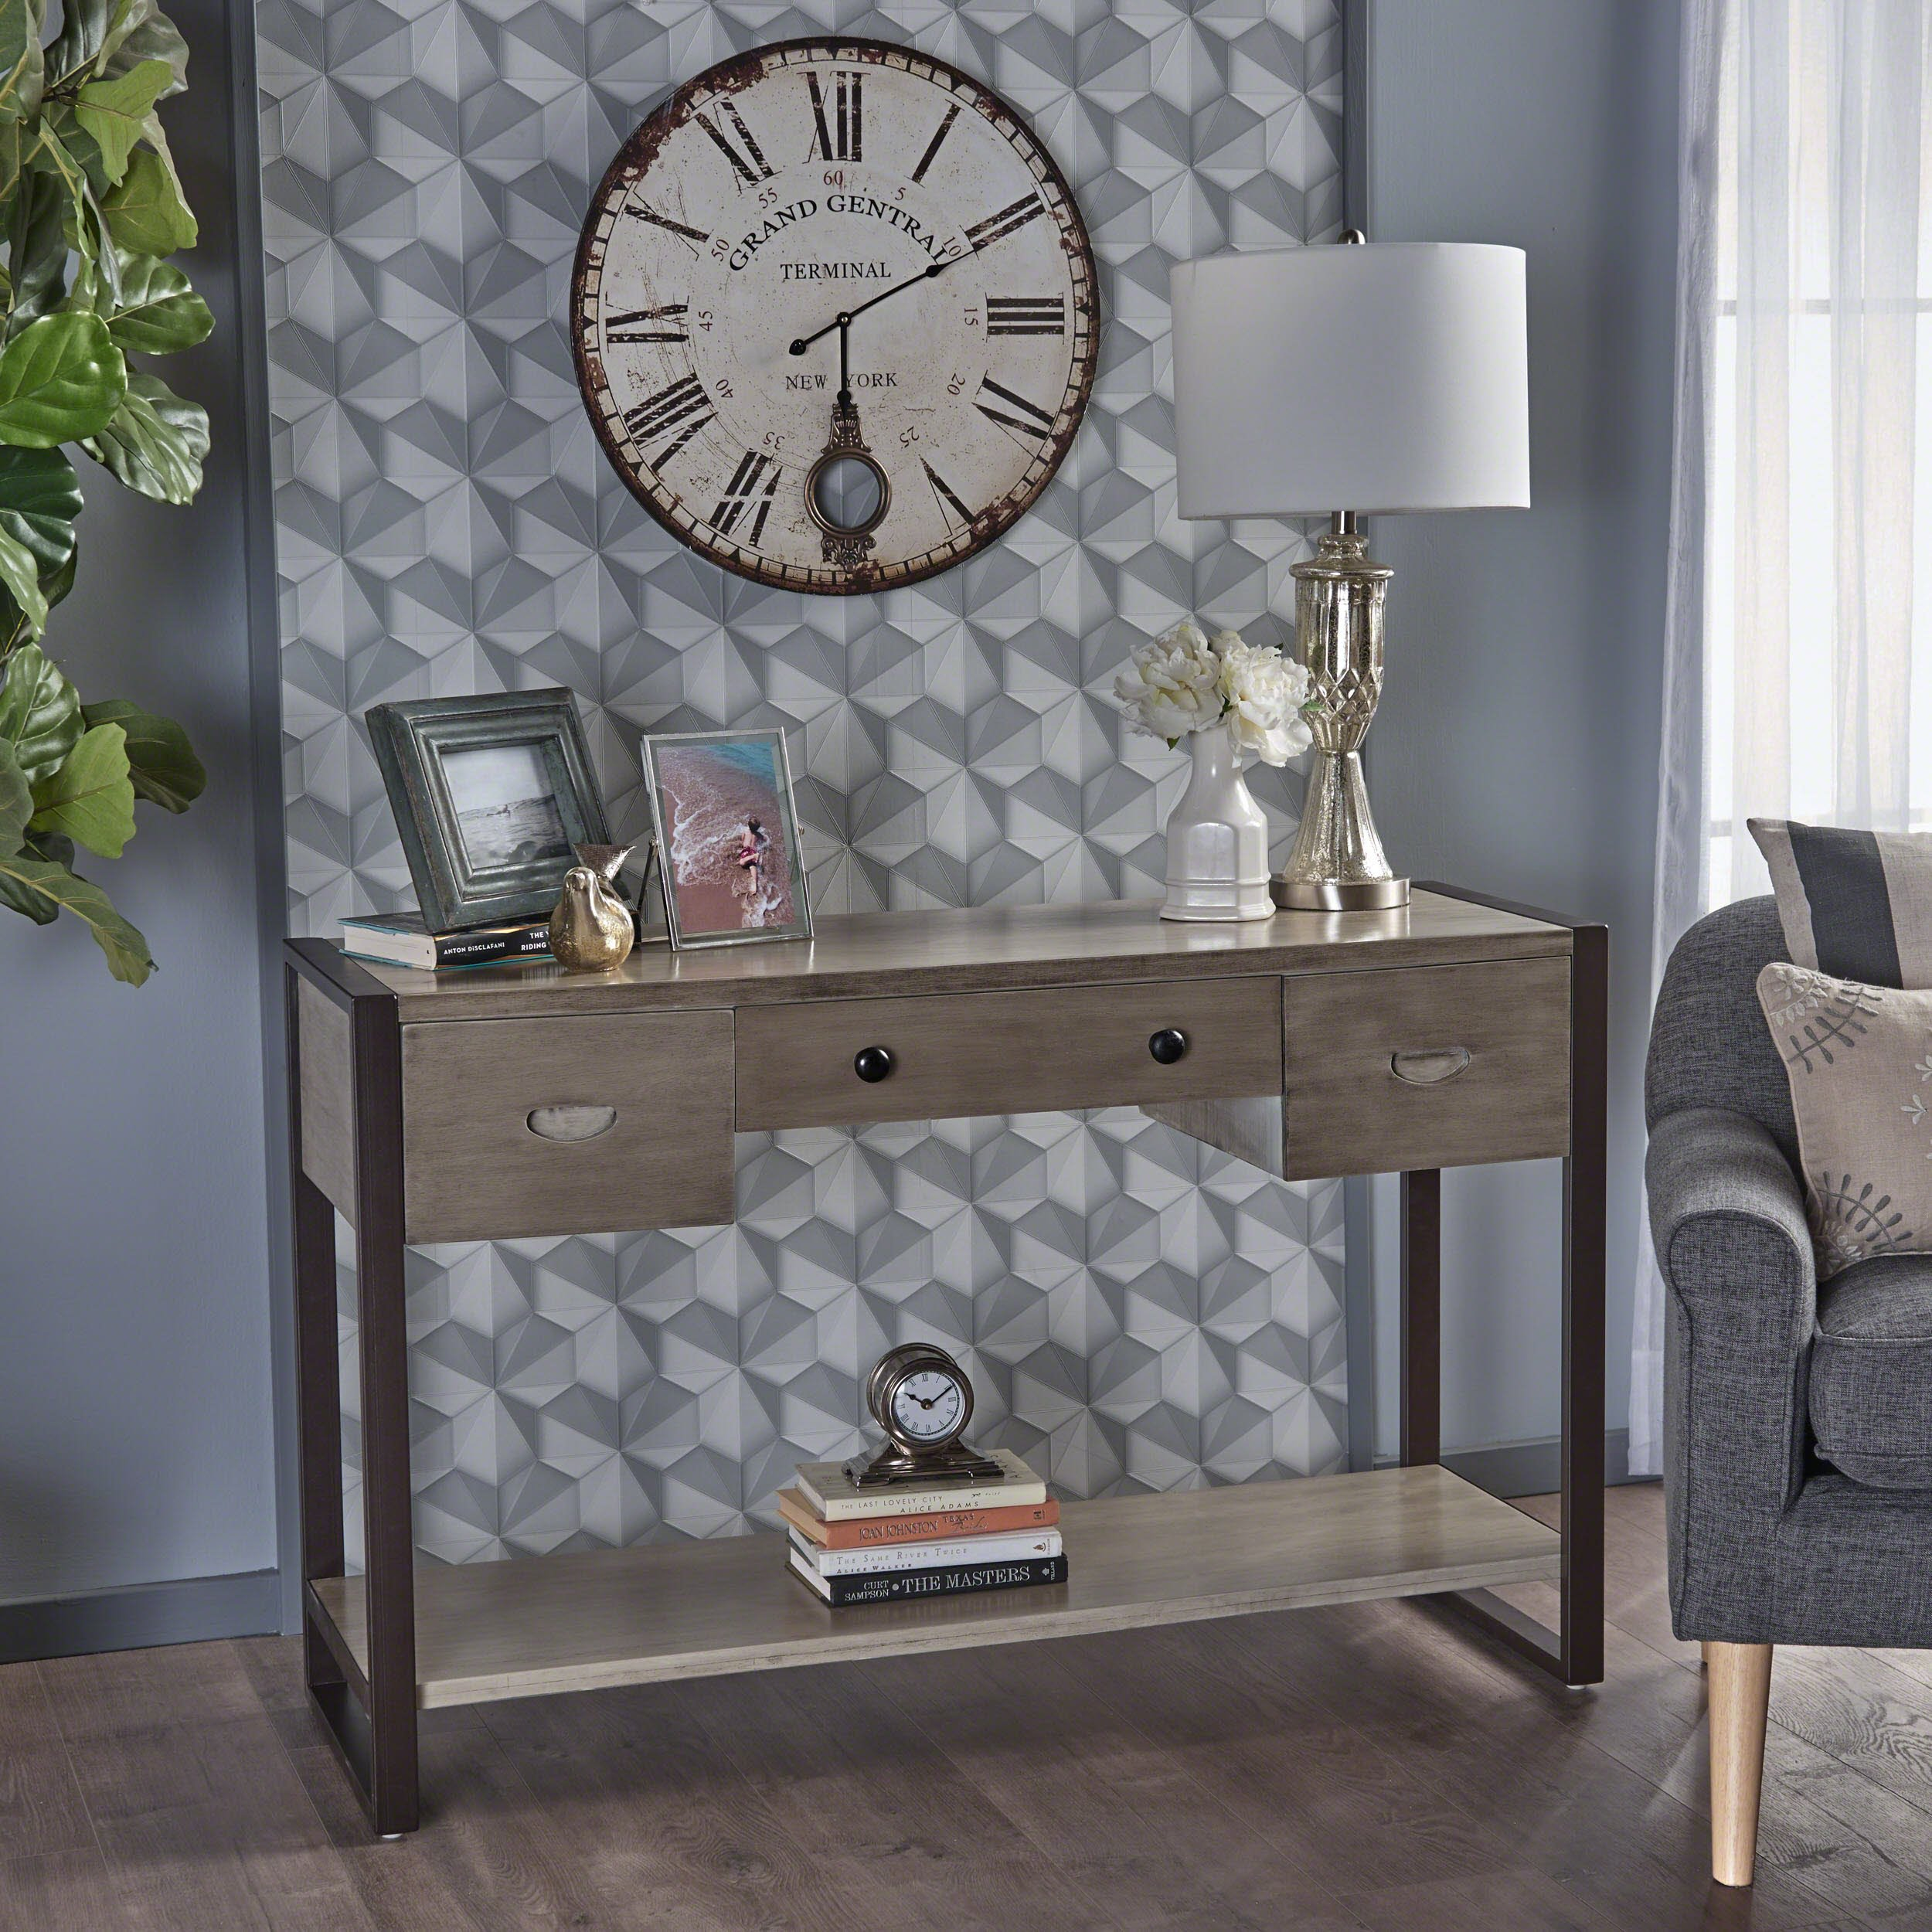 Lester Industrial Metallic Grey Acacia Wood Console Table with Rustic Metal Iron Accents